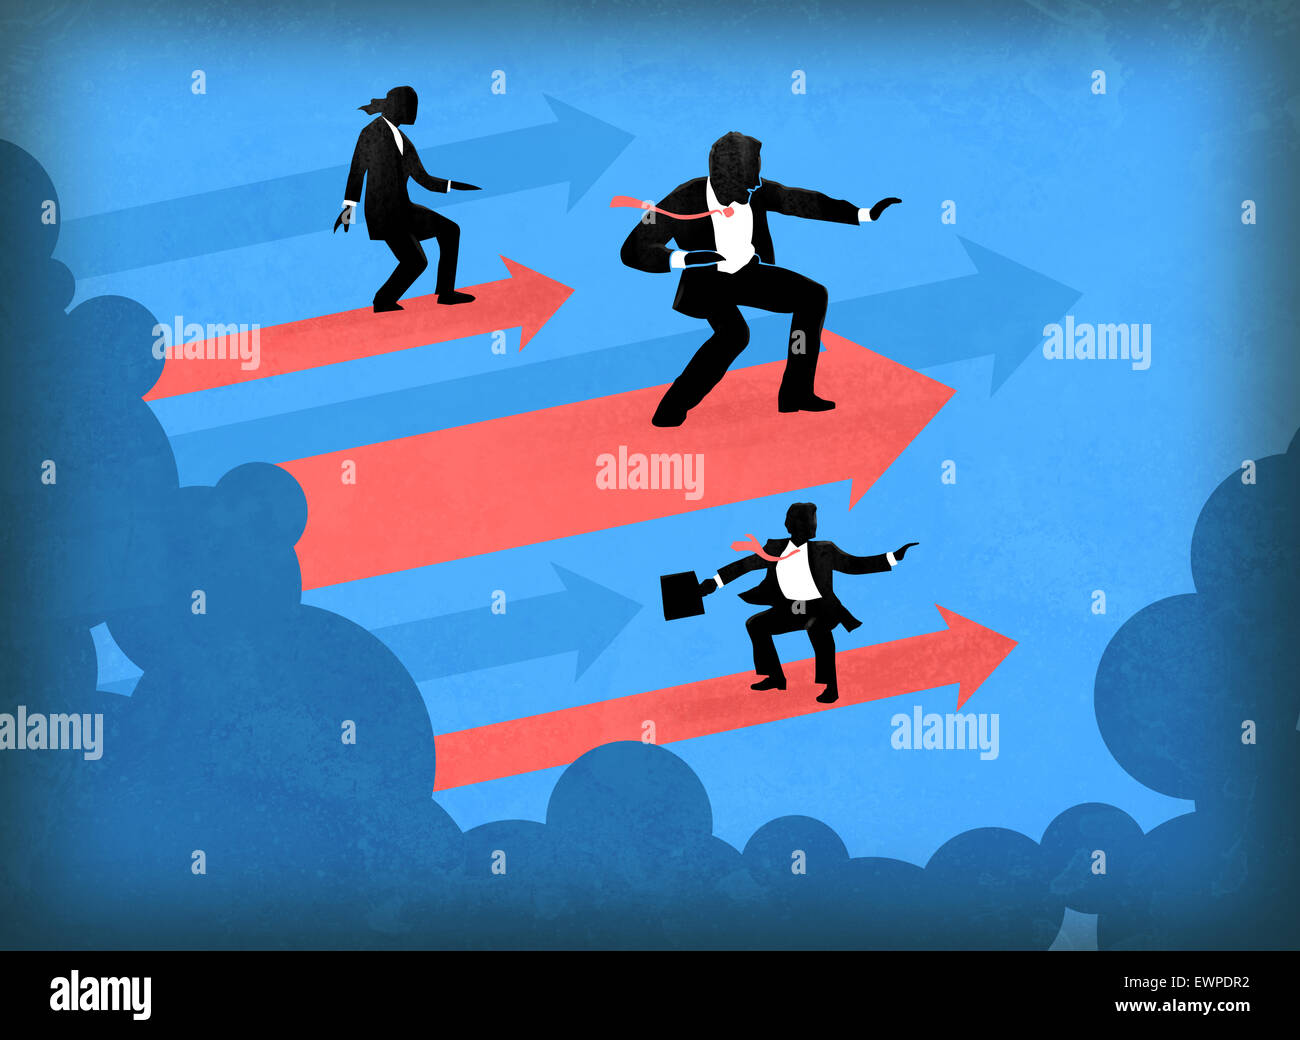 Business people surfing on arrows in direction of success - Stock Image